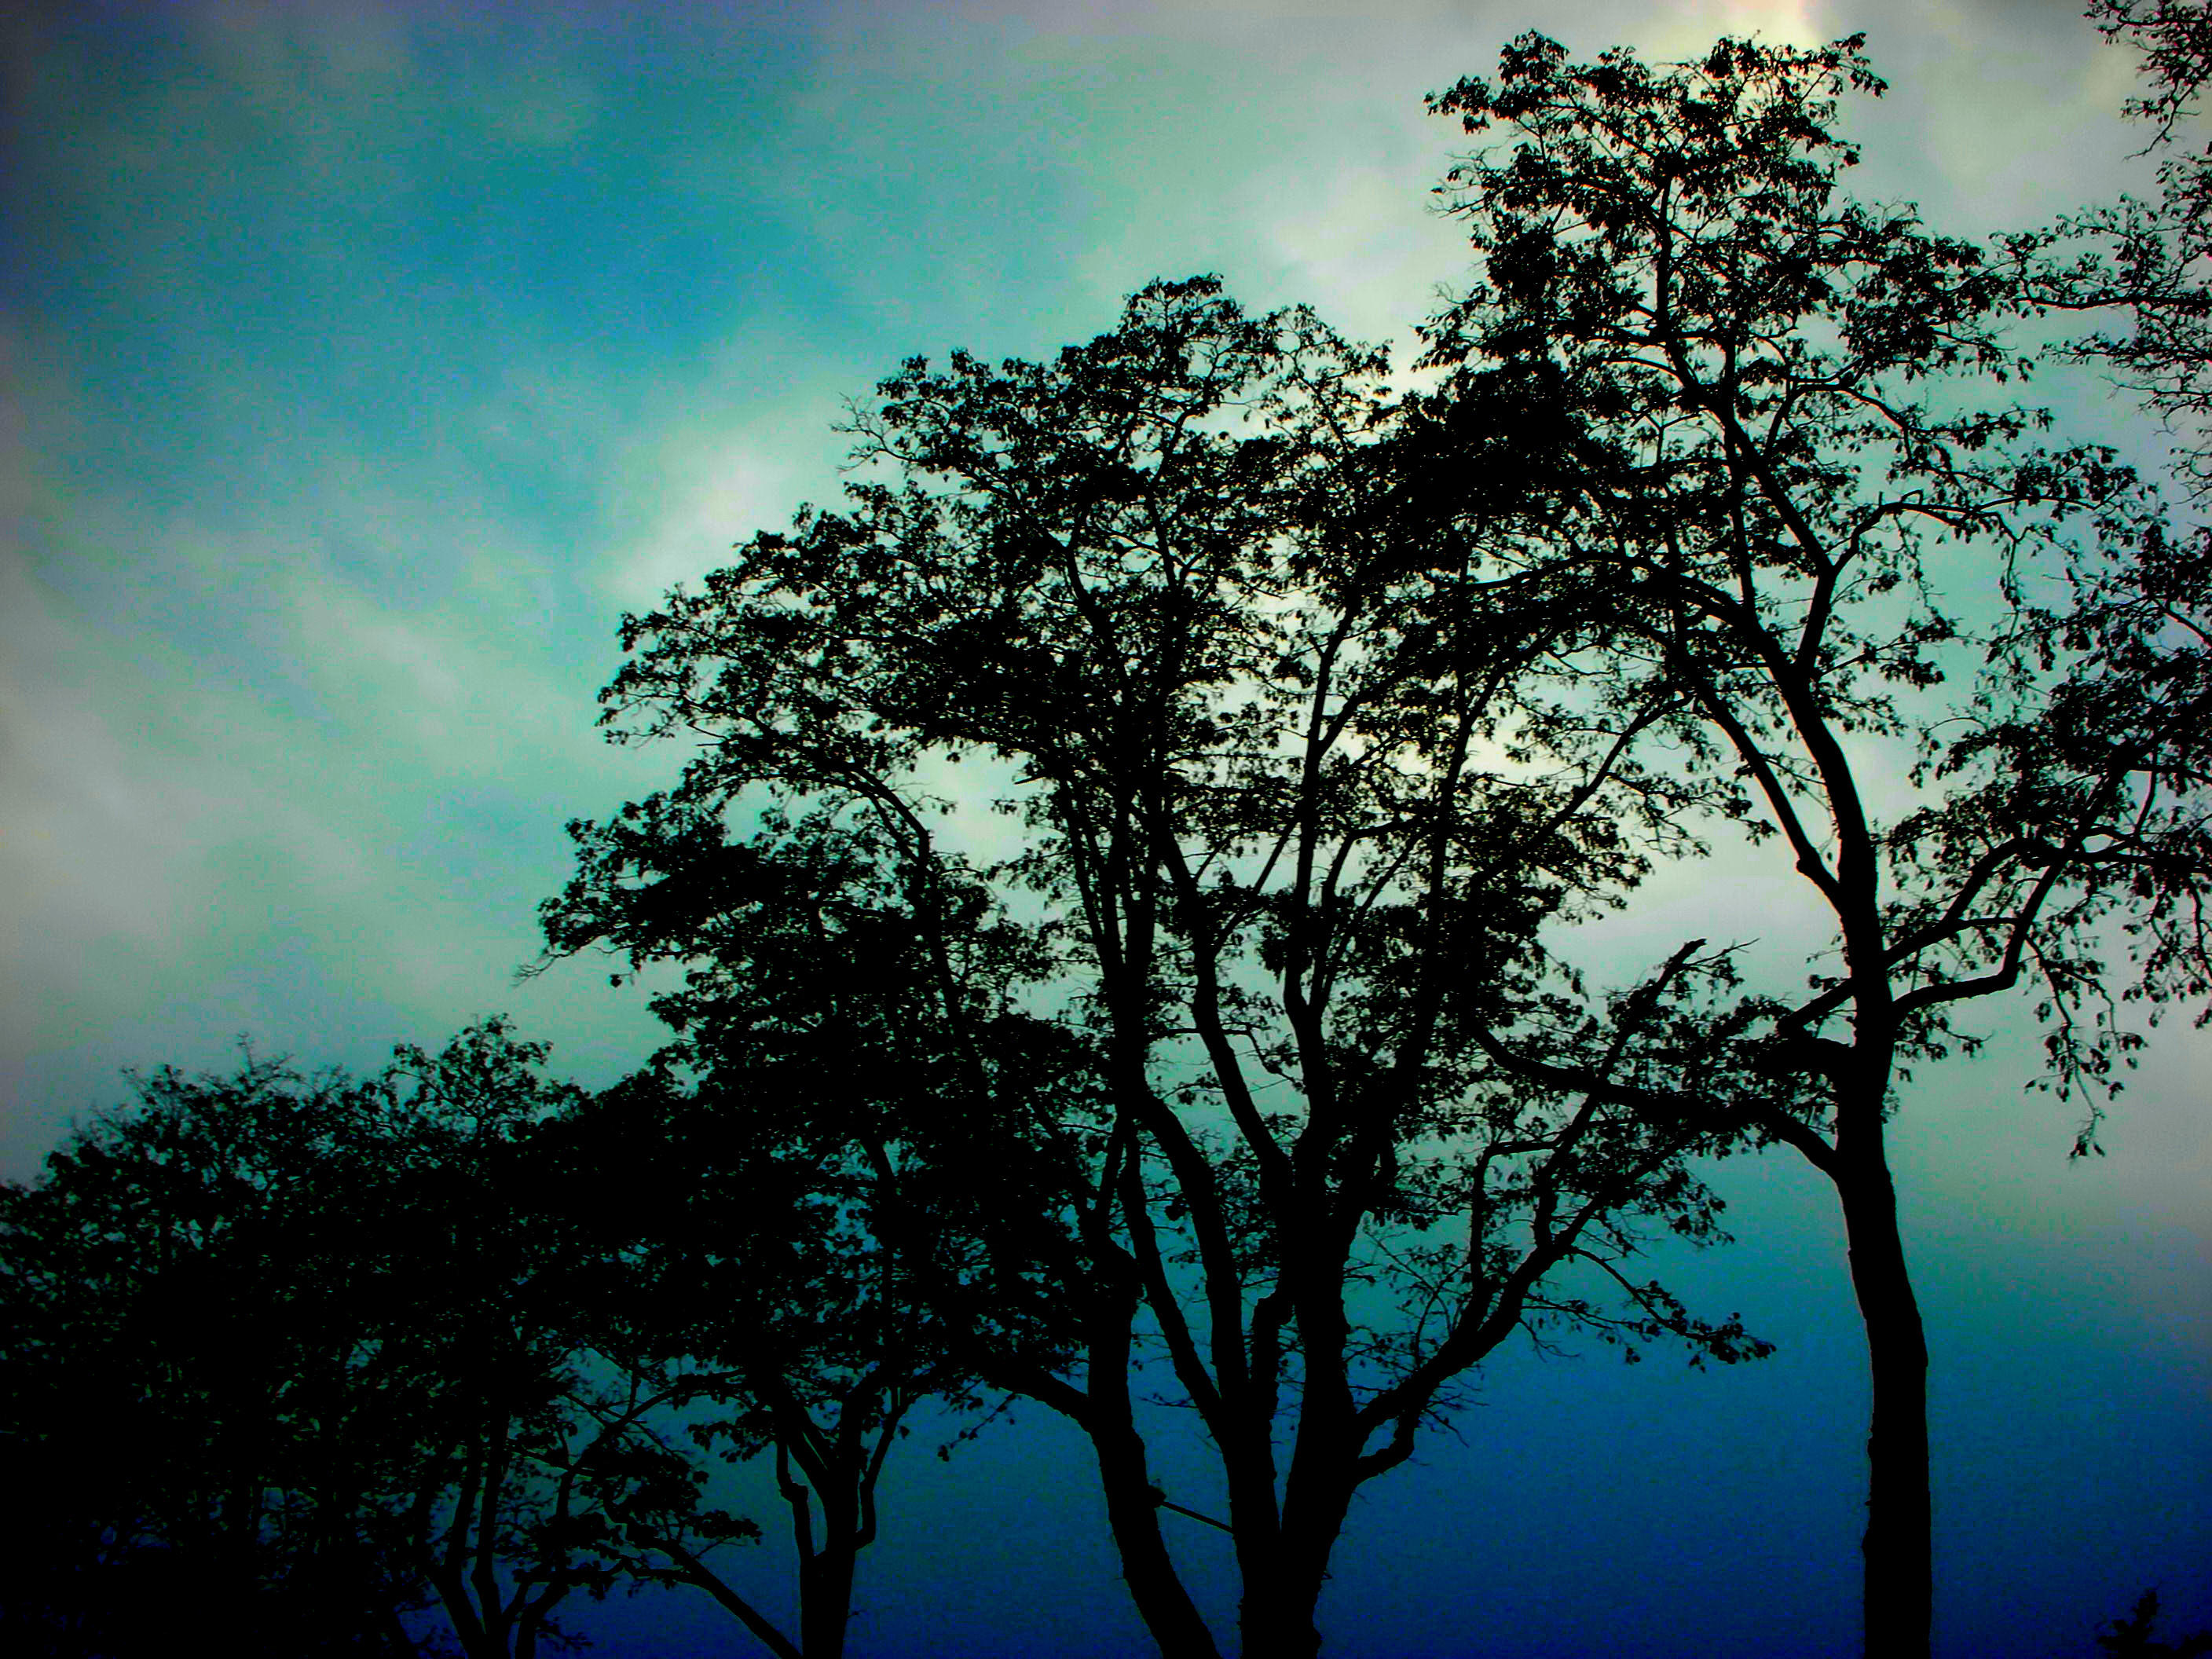 trees by m-l-o-d-a